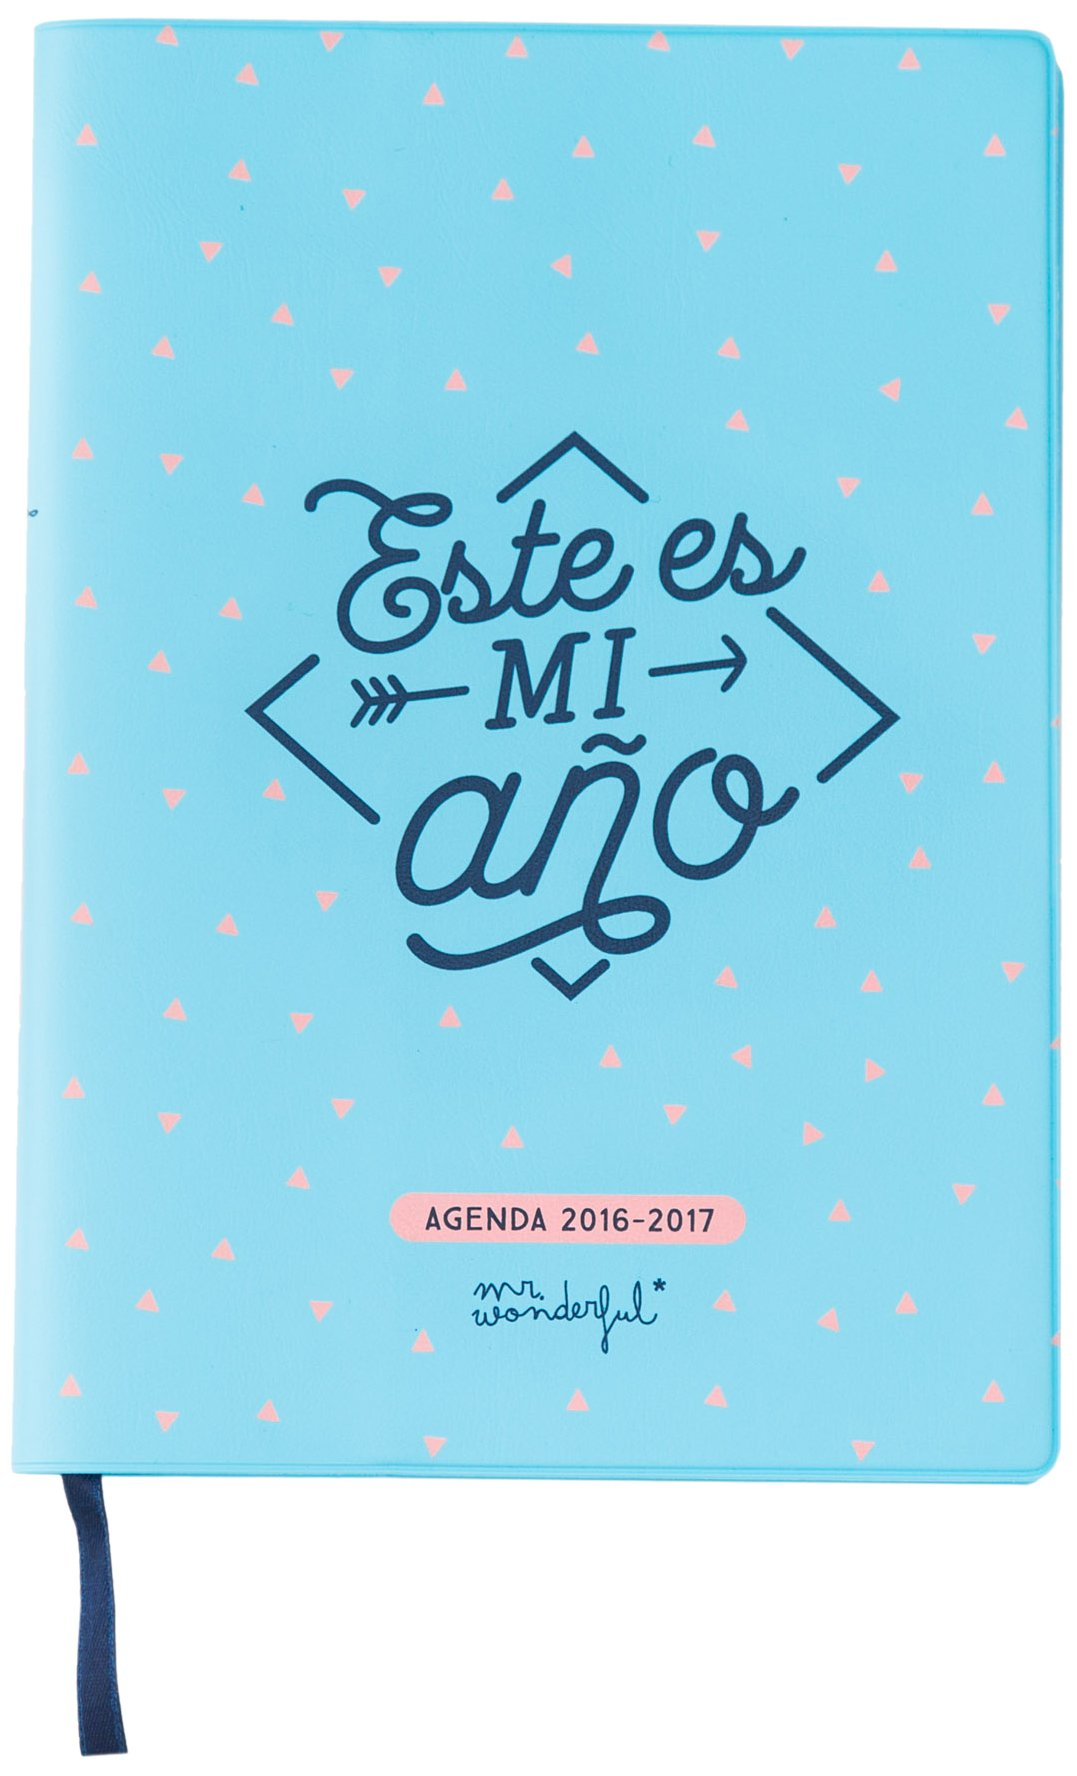 Mr. Wonderful - Agenda pequeña 2016-2017